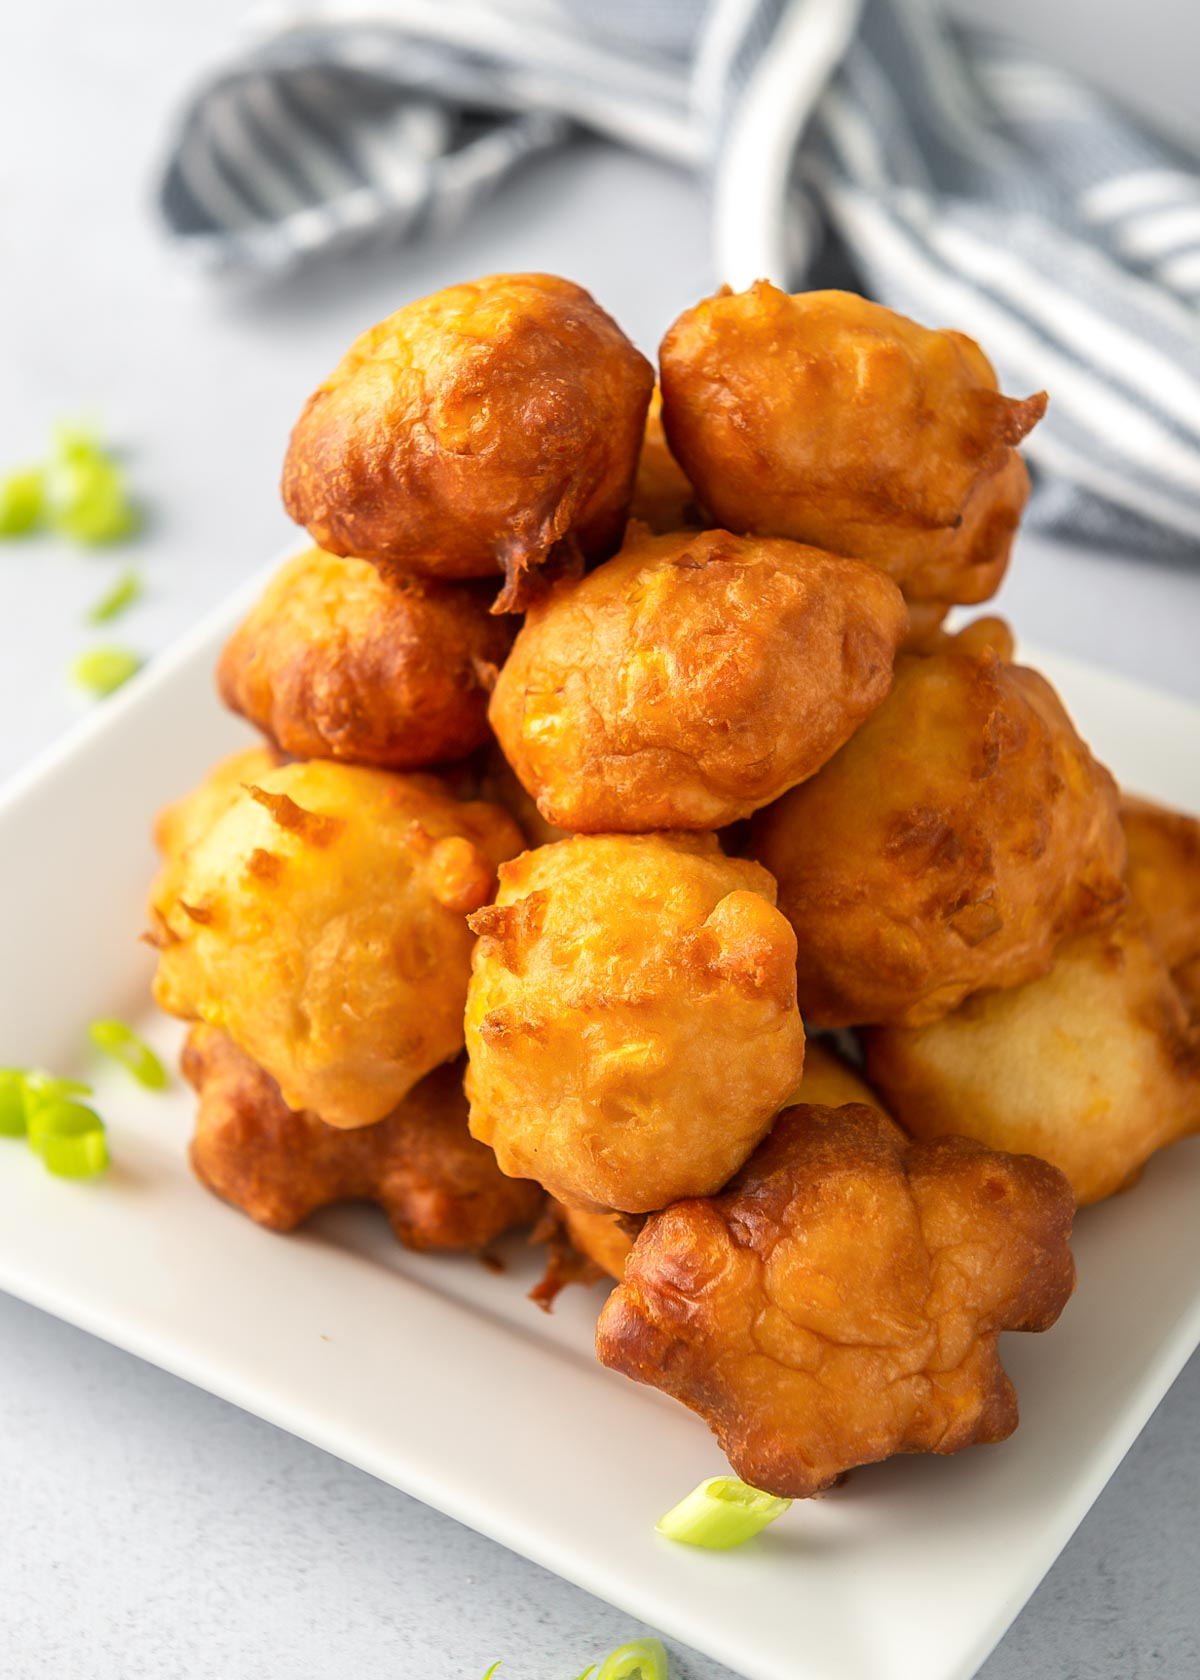 Homemade corn fritters stacked on a white plate